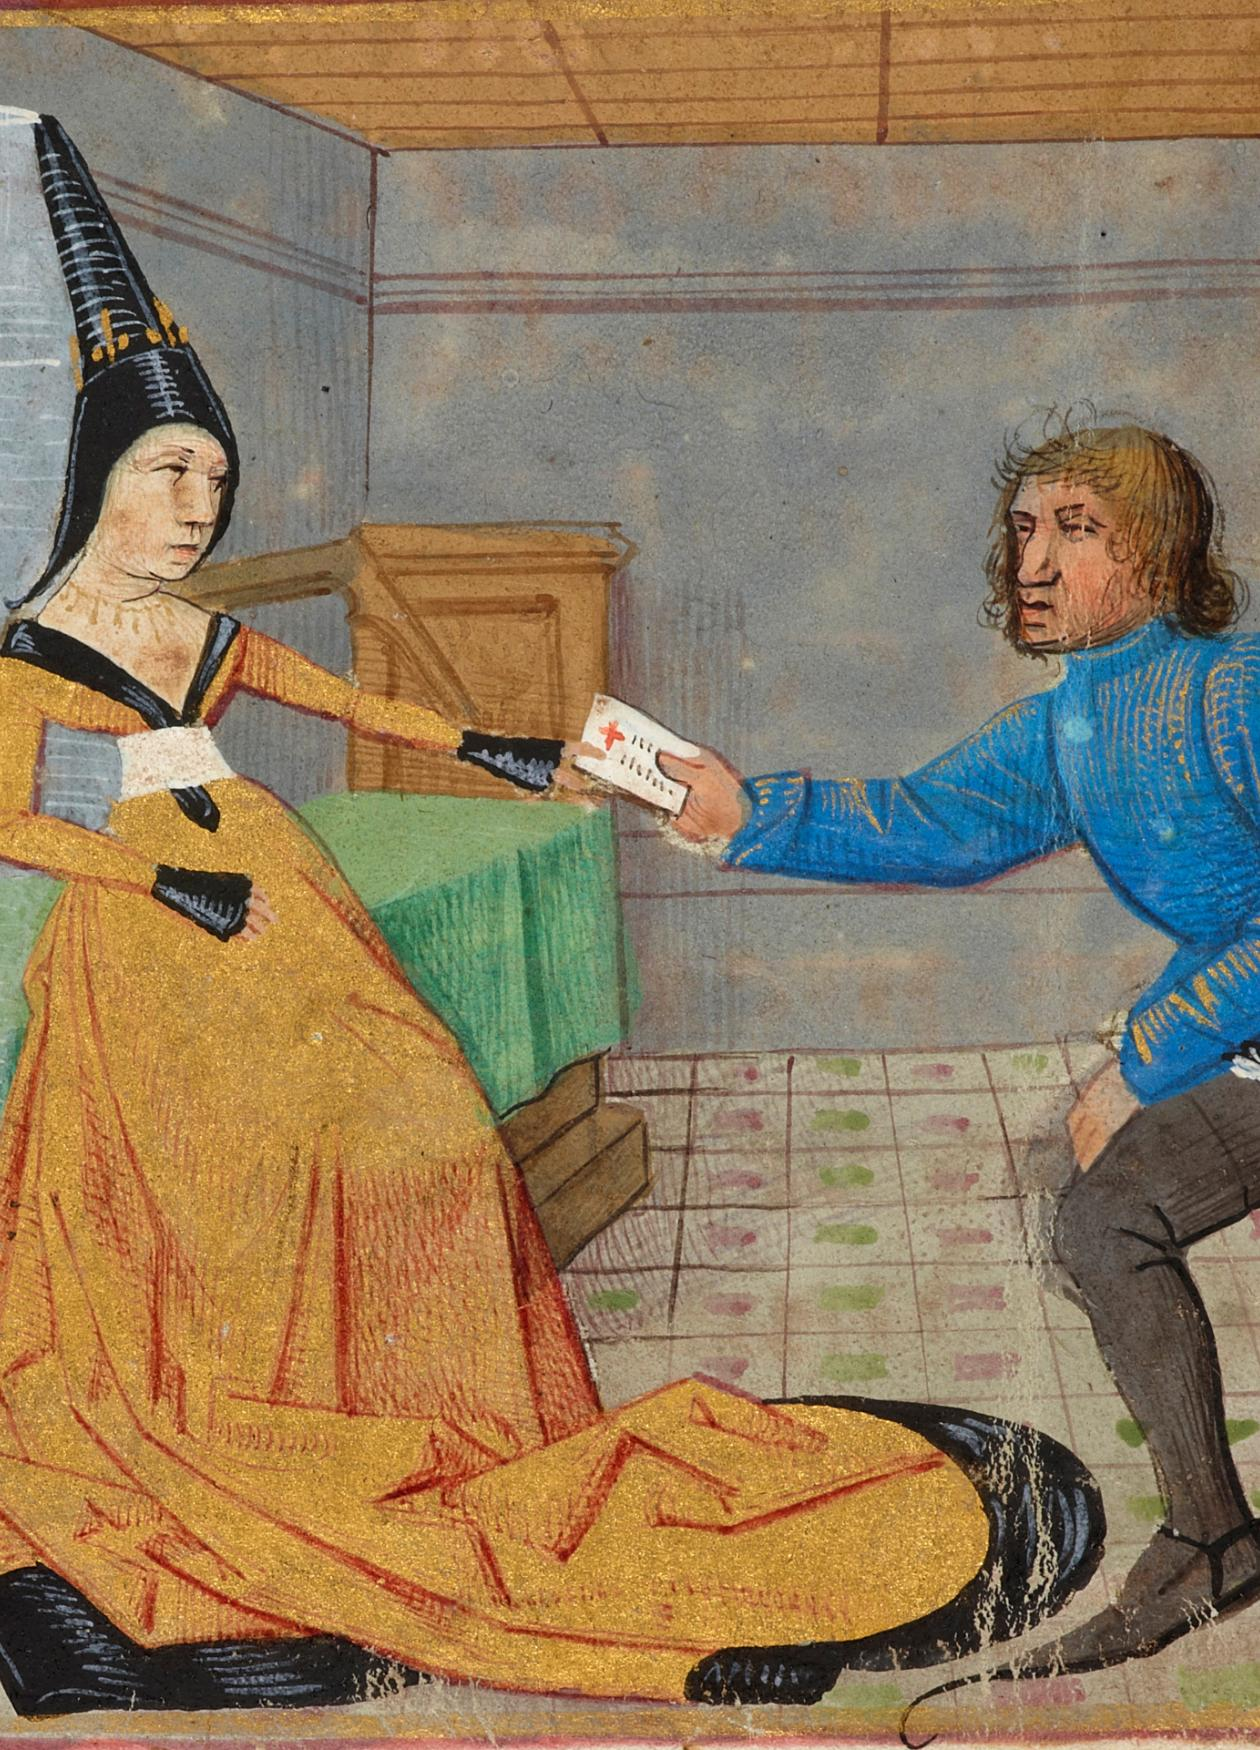 Painting of Genevieve in a yellow robe and King Mark on his knees, delivering a letter to her.